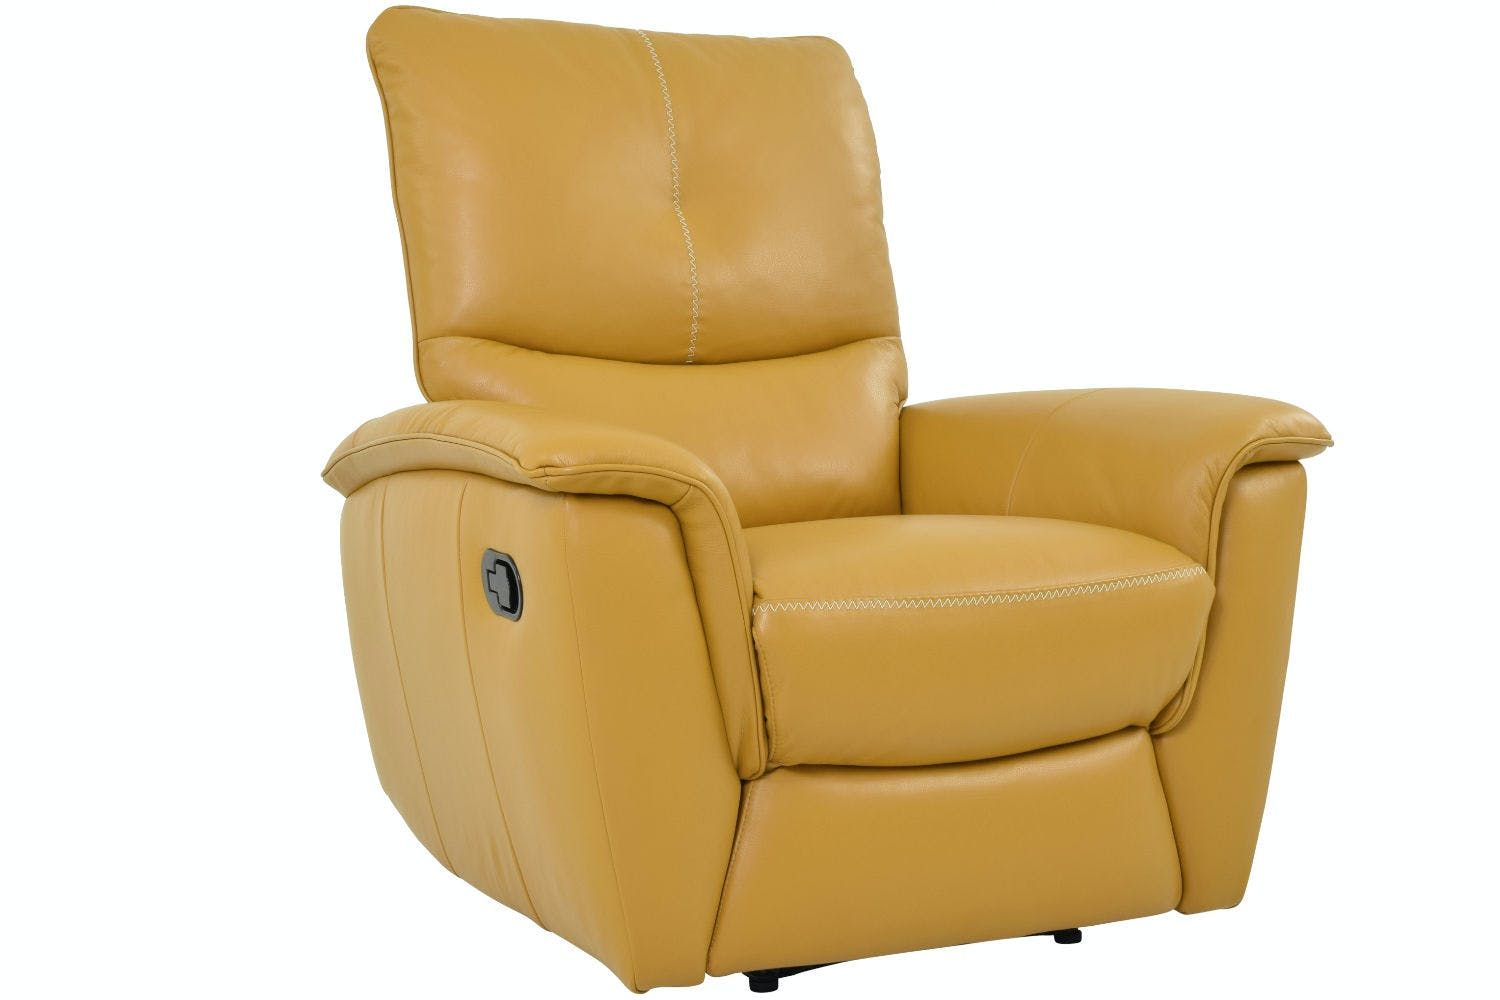 balmoral recliner albert grain top in balmoralalbert abode topgrainleather humble leather shasta hookerfurniture